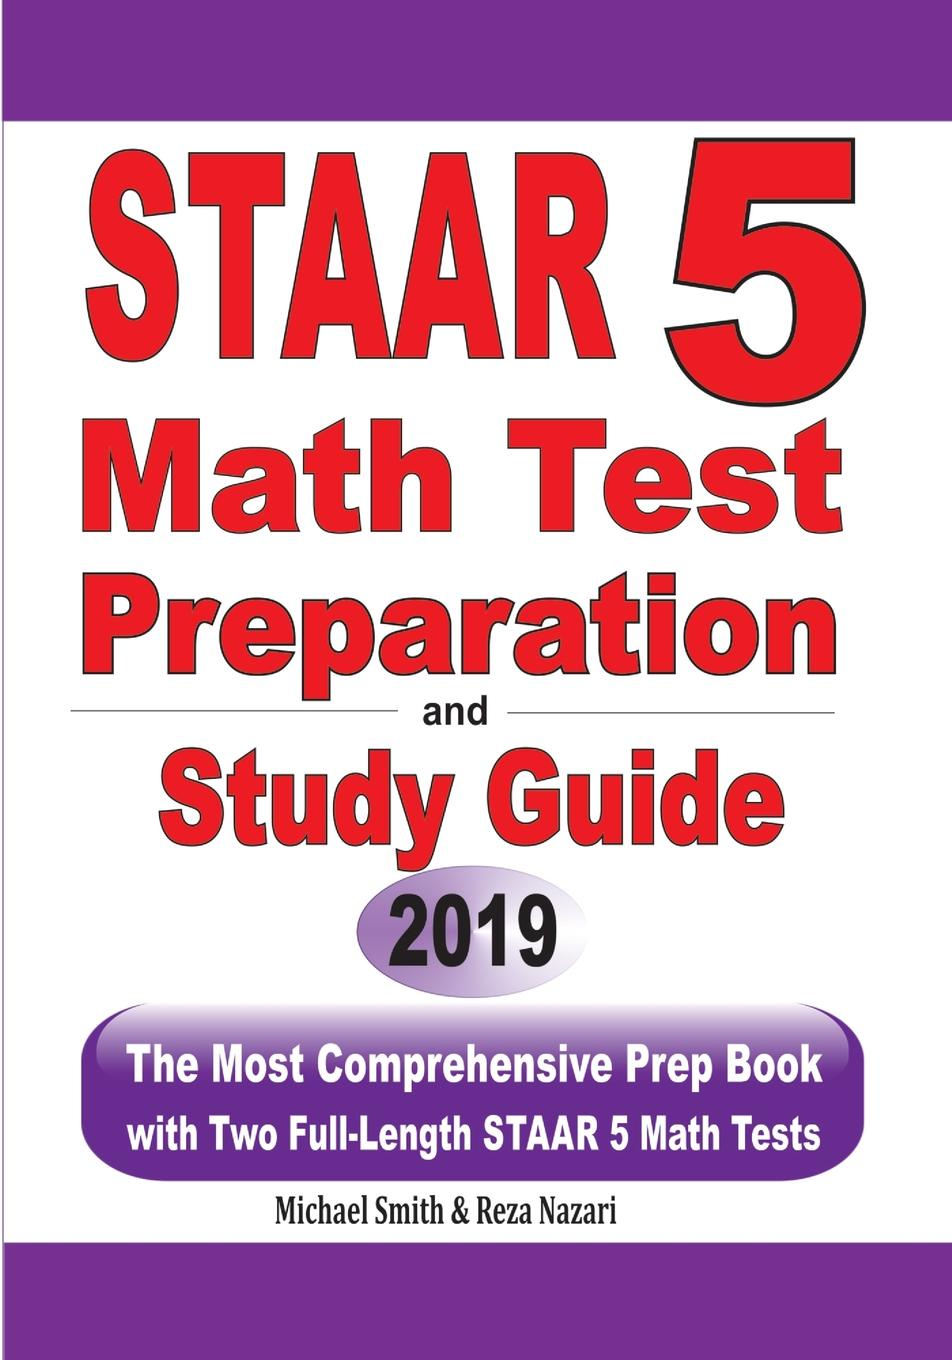 Michael Smith, Reza Nazari STAAR 5 Math Test Preparation and Study Guide. The Most Comprehensive Prep Book with Two Full-Length STAAR Math Tests